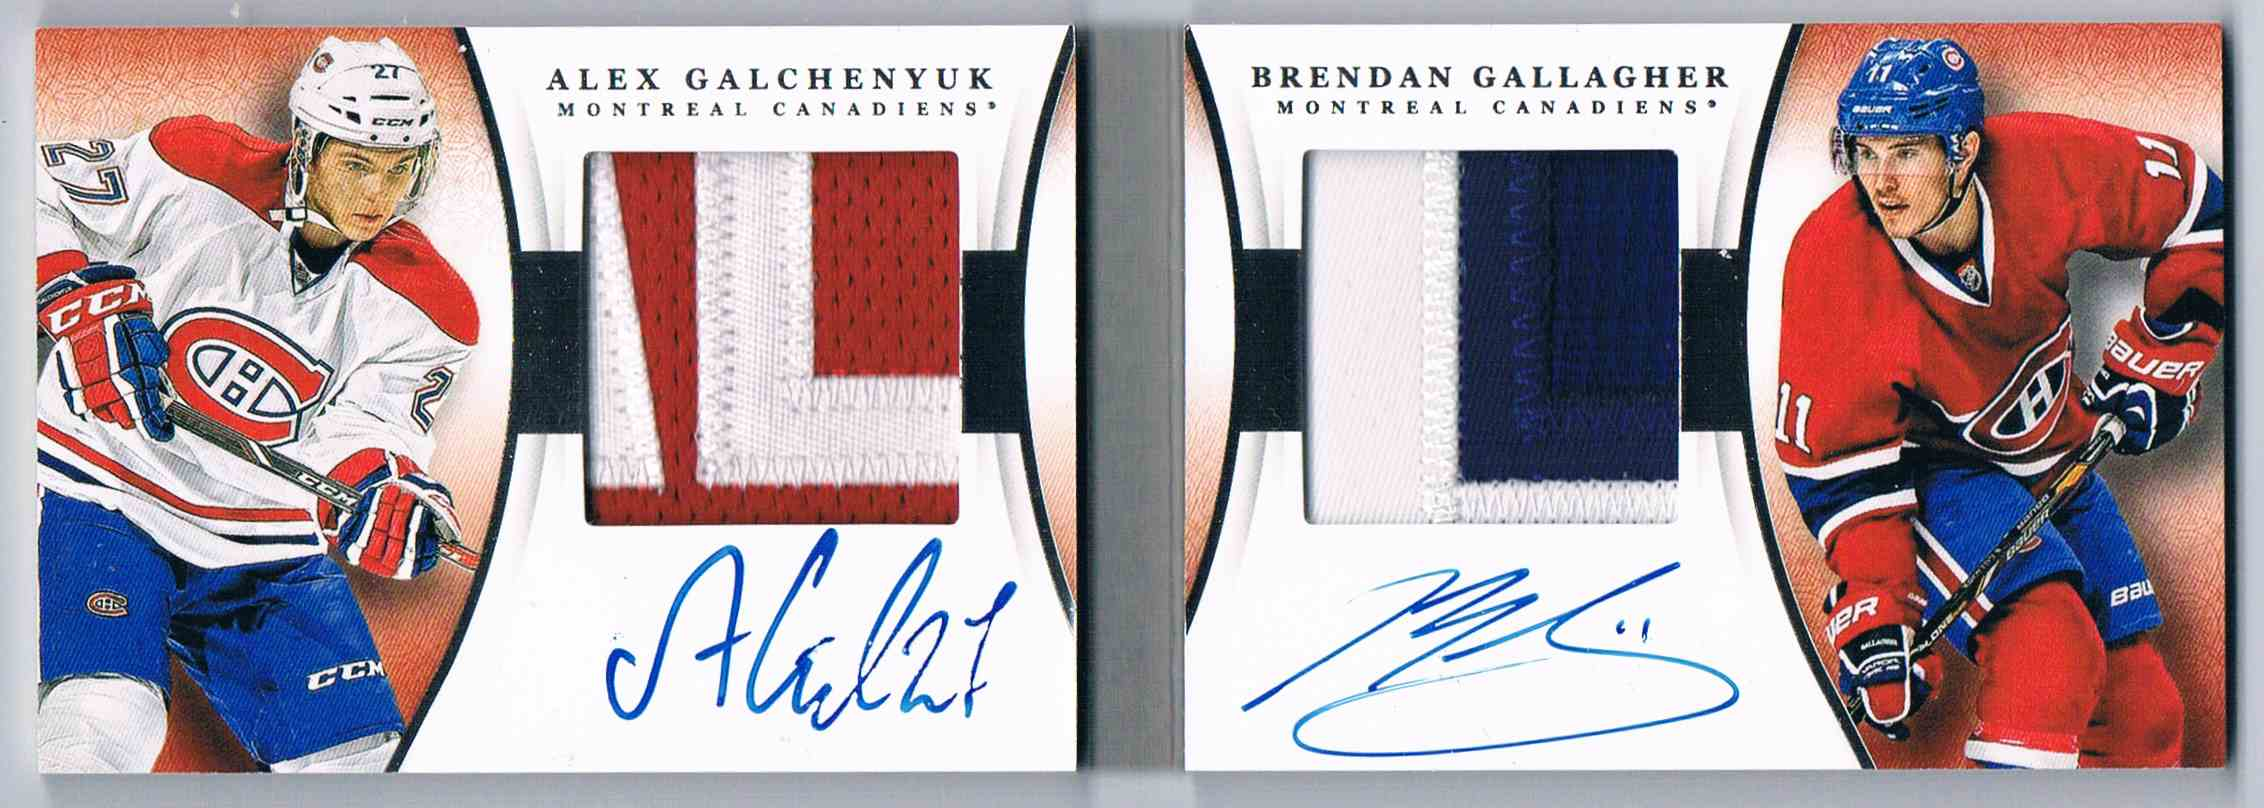 2013-14 Panini National Treasures Dual Rookie Jumbo Patch Autographs Alex Galchenyuk/Brendan Gallagher #DR-GG card front image